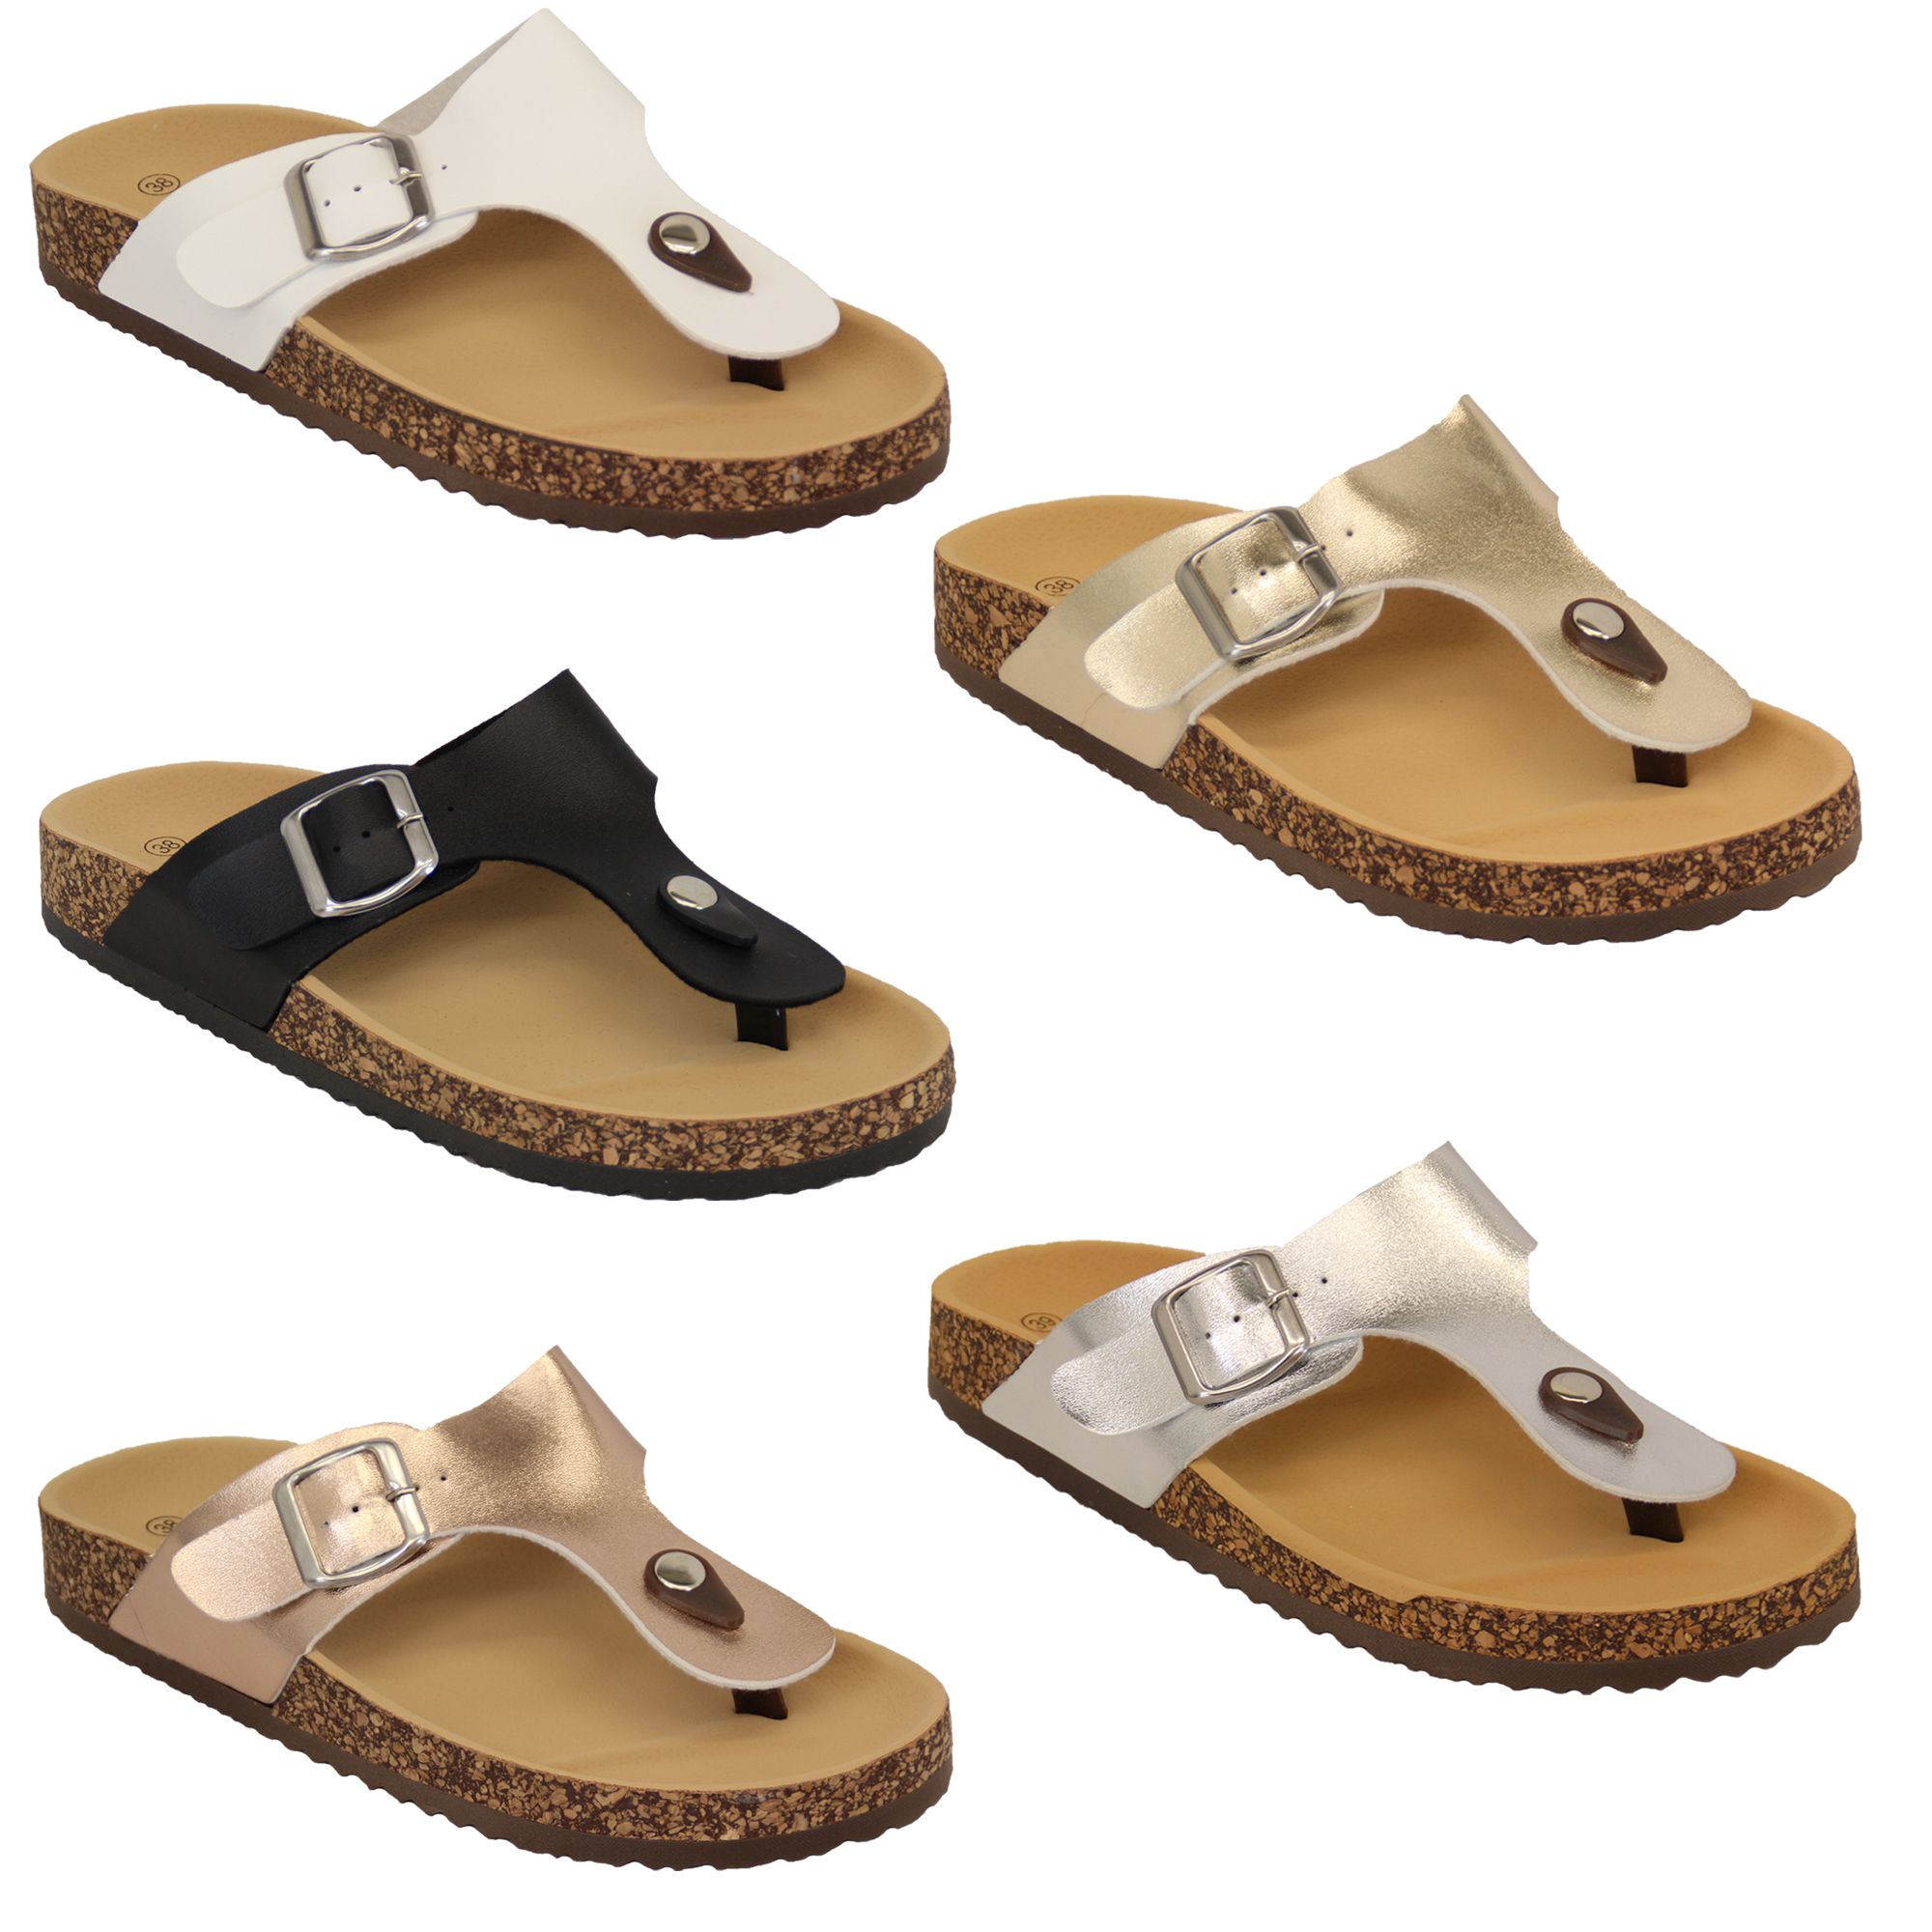 Mule Sandals Womens Flat Toe Post